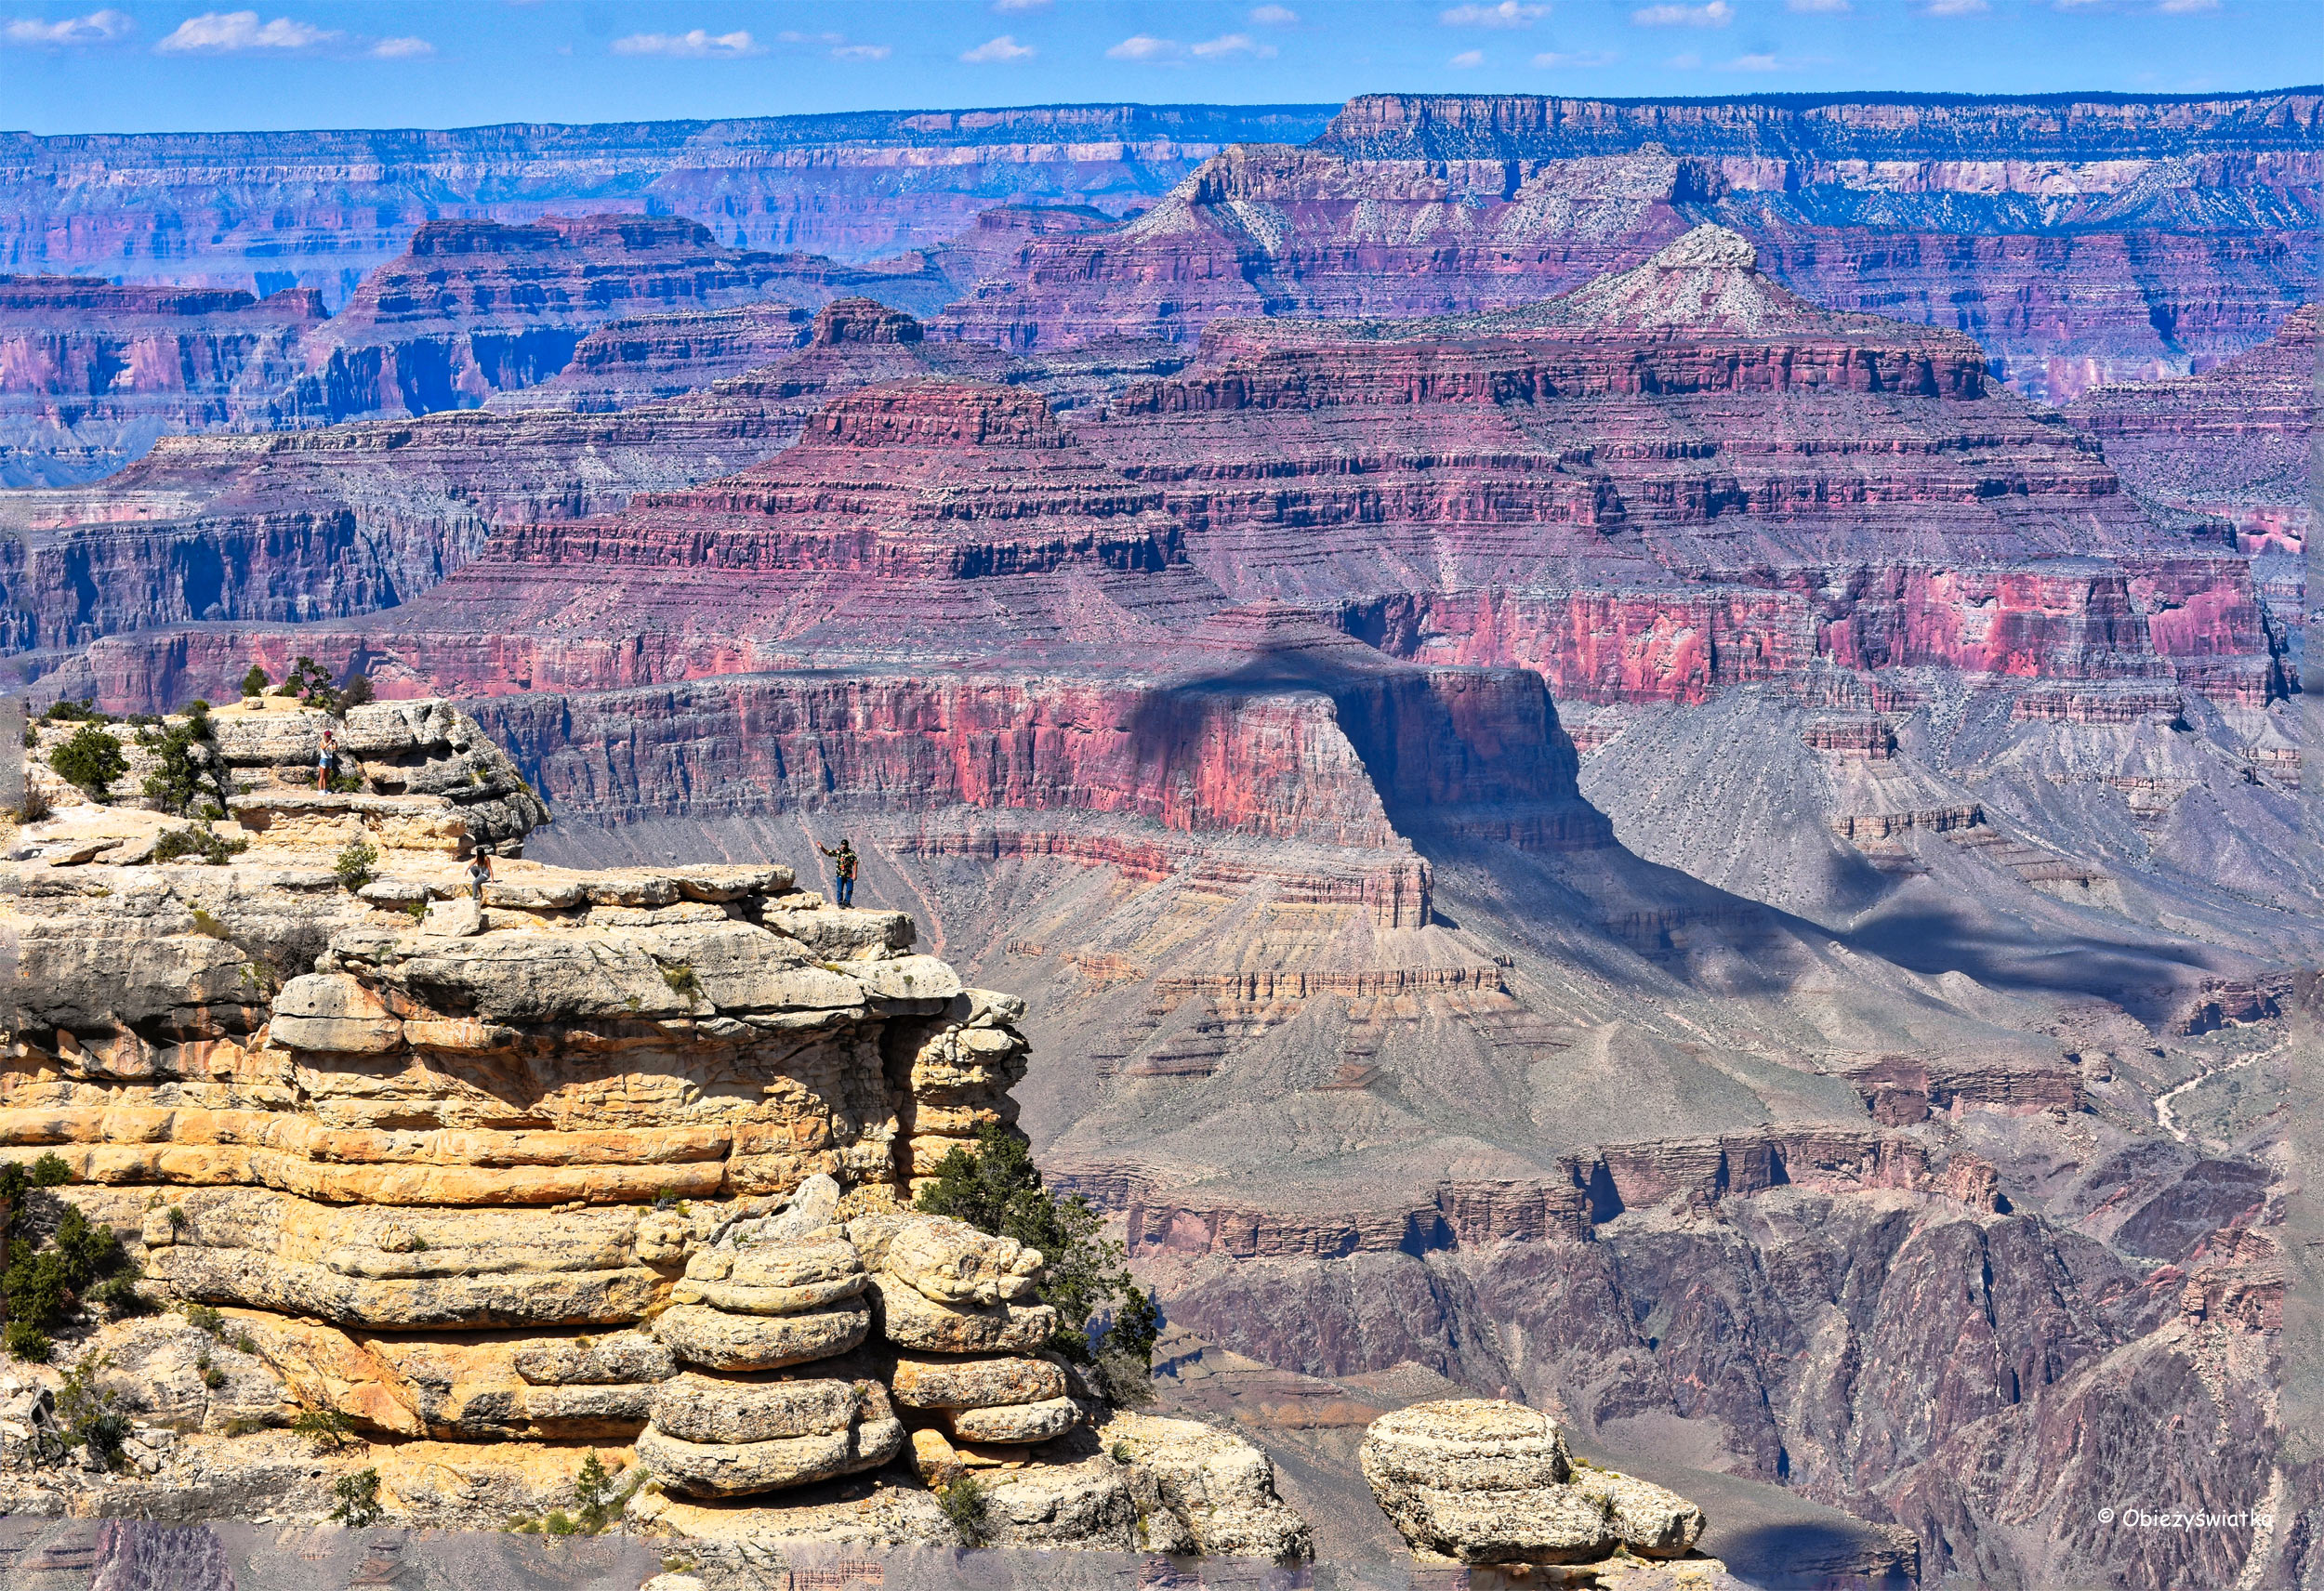 Wielki Kanion - Grand Canyon National Park, Arizona, USA